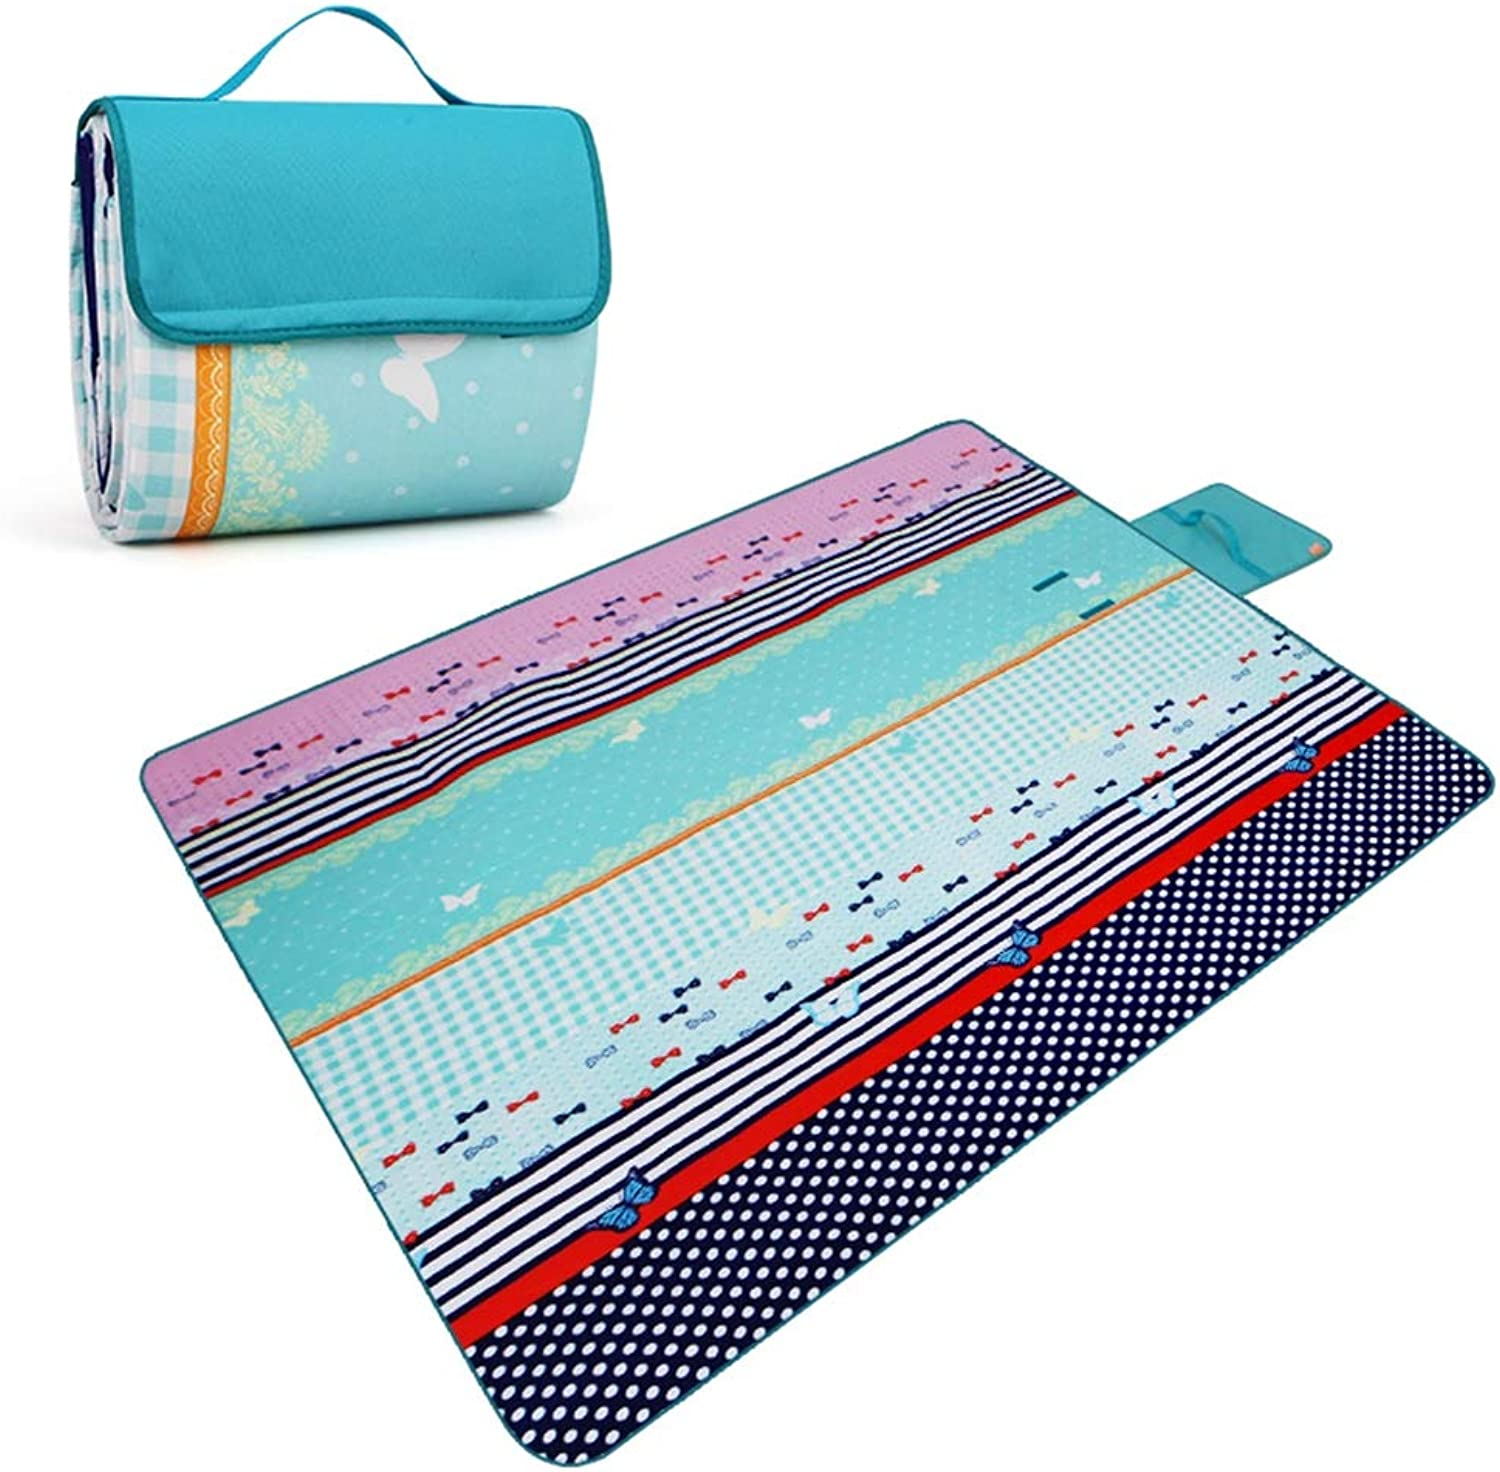 Large Outdoor Picnic Blanket  200 x 150 cm Picnic Blanket Waterproof Backing Outdoor Beach Picnic Rug Mat with Handle,Camping Travelling on Grass